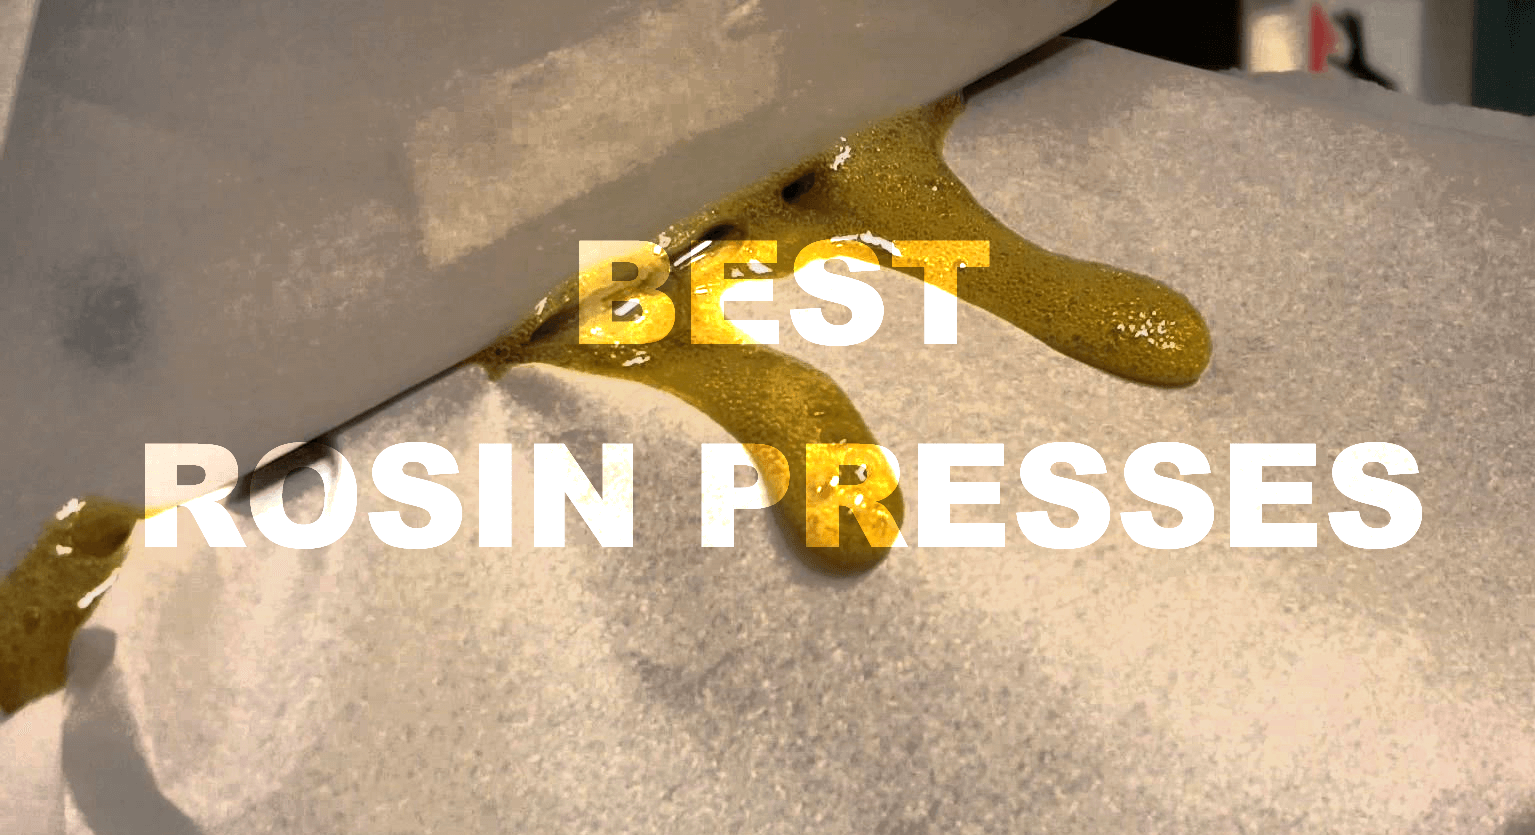 Find The Best Rosin Press To Make Dabs At Home Safely